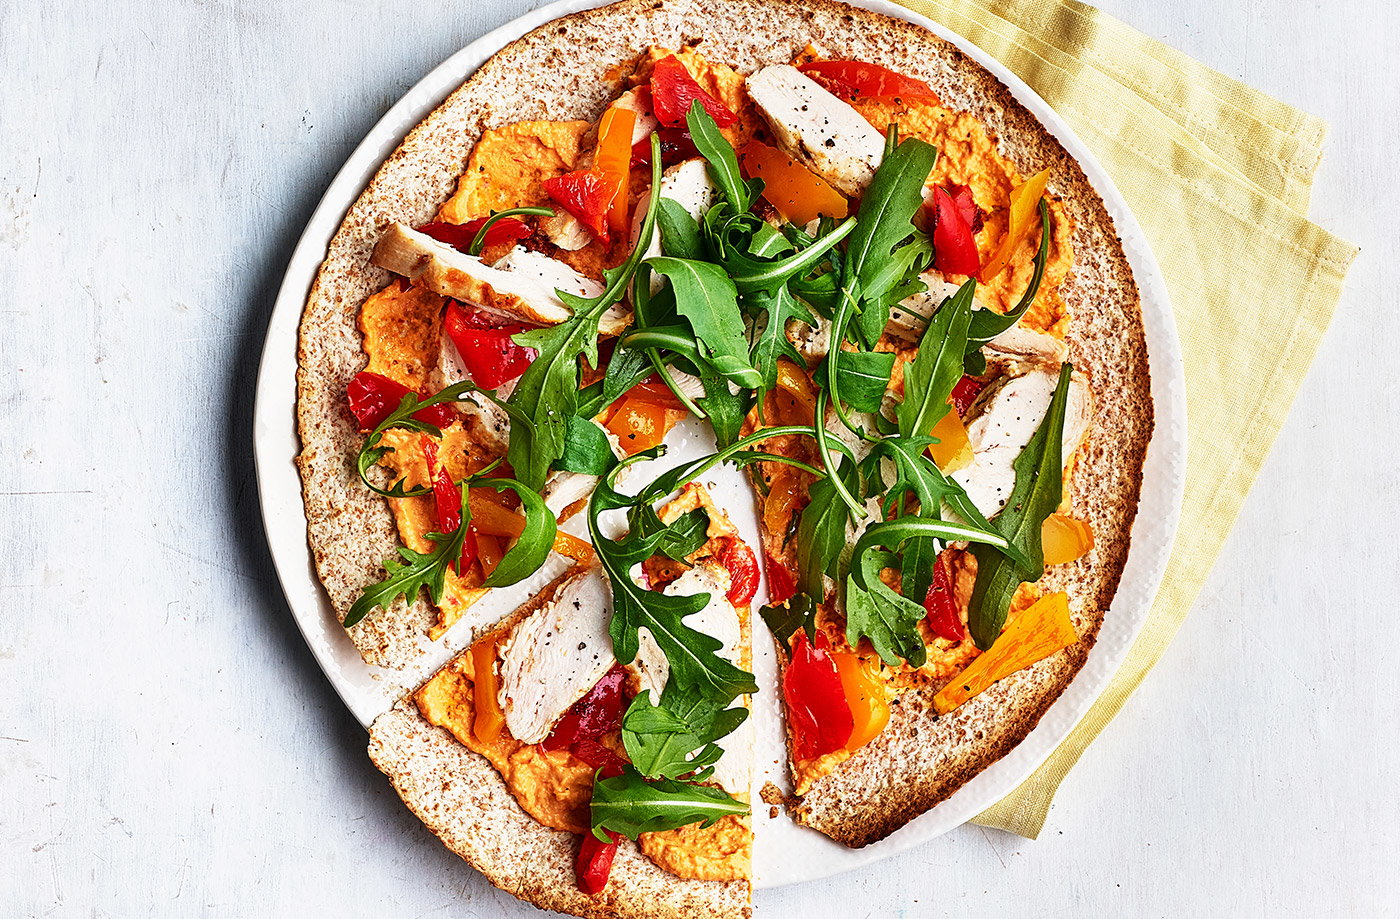 Spiced houmous and chicken 'pizzas' recipe